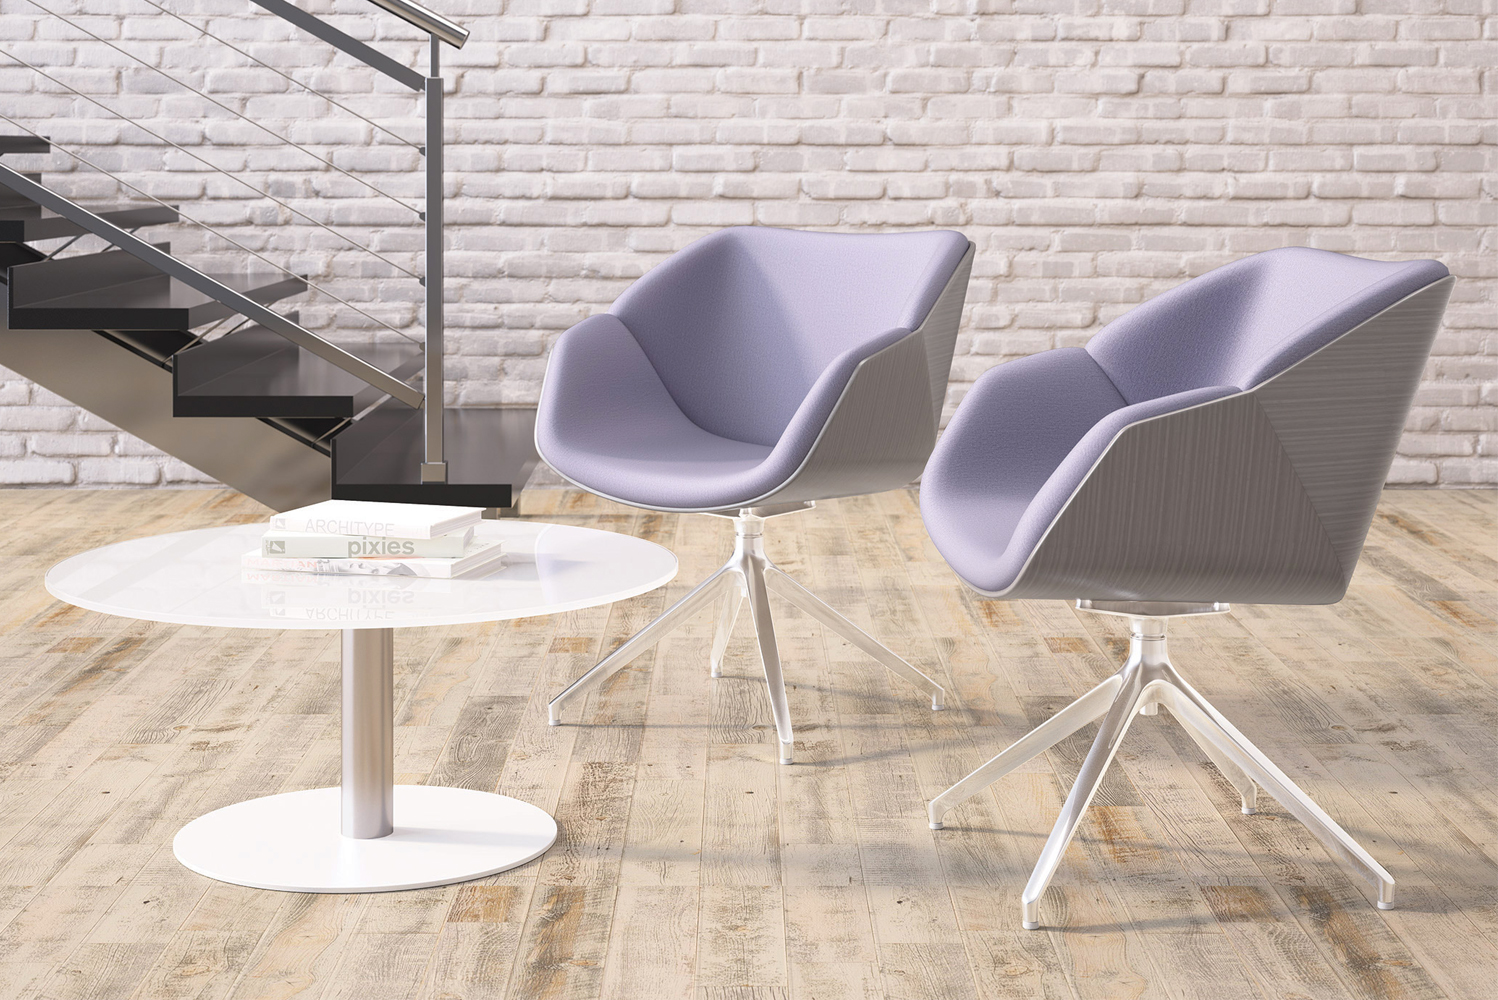 Delgado has seats that can be upholstered with a contrasting back or contrasting seat.